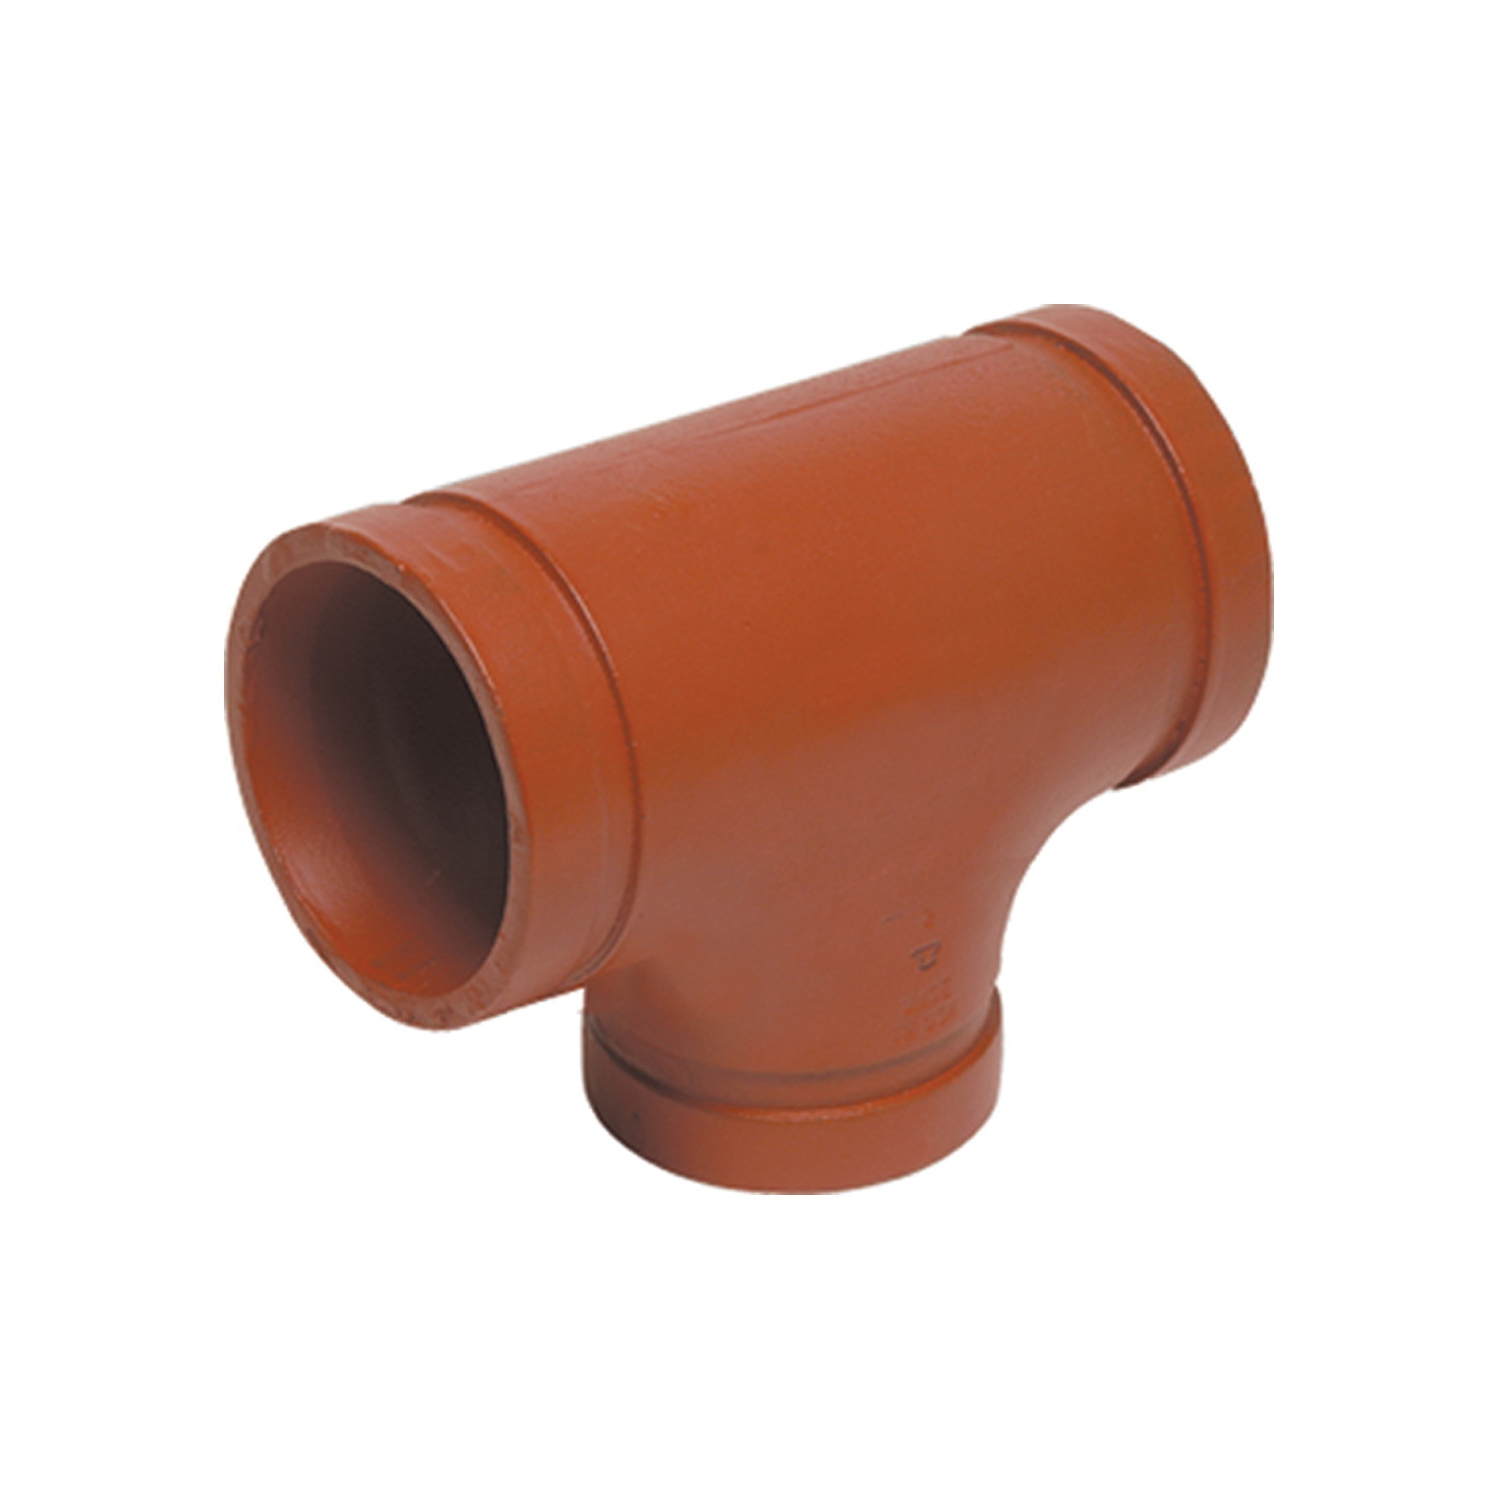 Gruvlok® 0390018620 FIG 7061 Standard Reducing Pipe Tee, 8 x 8 x 4 in, Grooved, Ductile Iron, Domestic